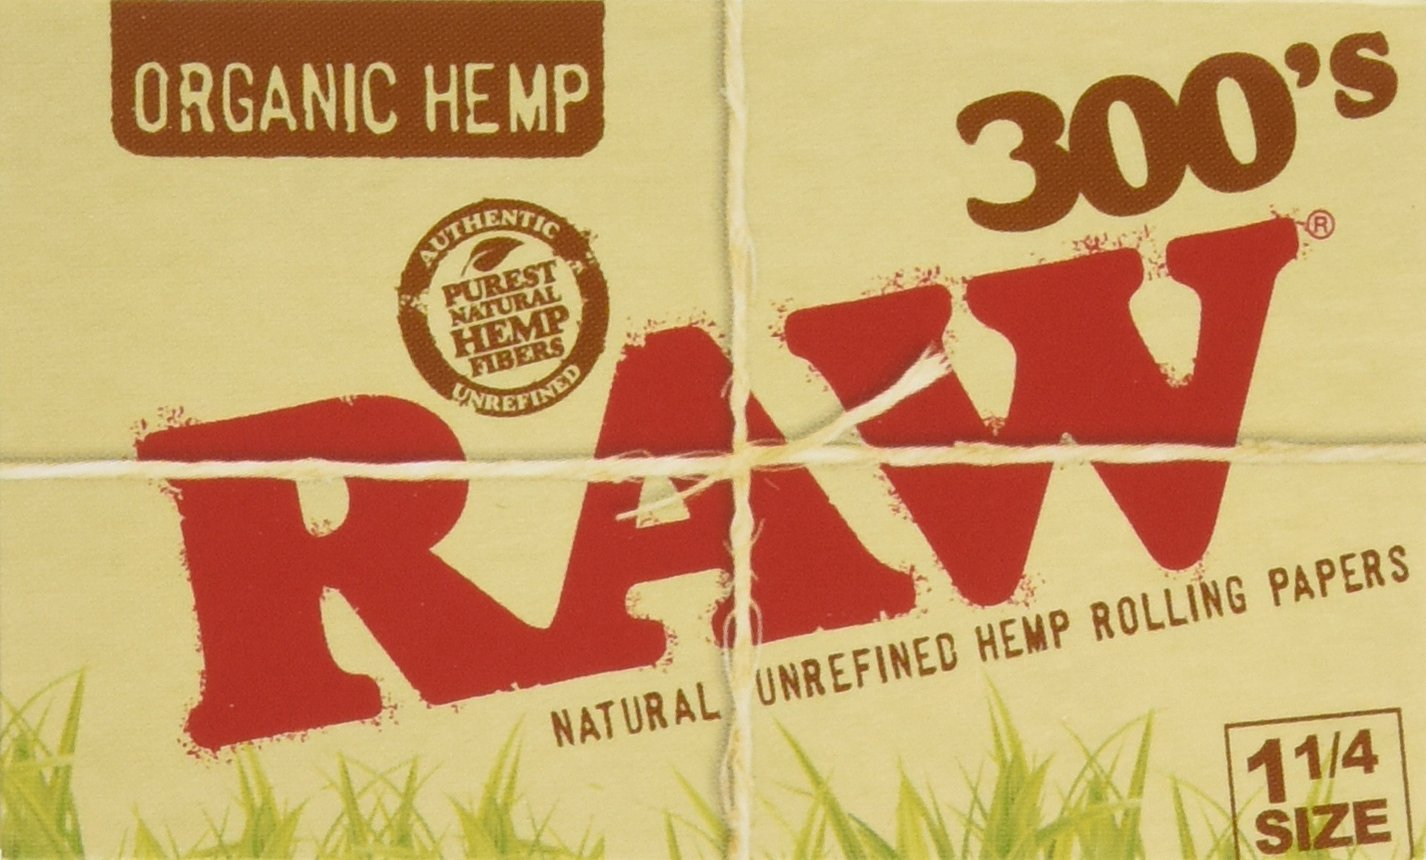 Raw 300 Organic 1.25 1 1/4 Size Rolling Papers 5 Pack = 1500 Leaves